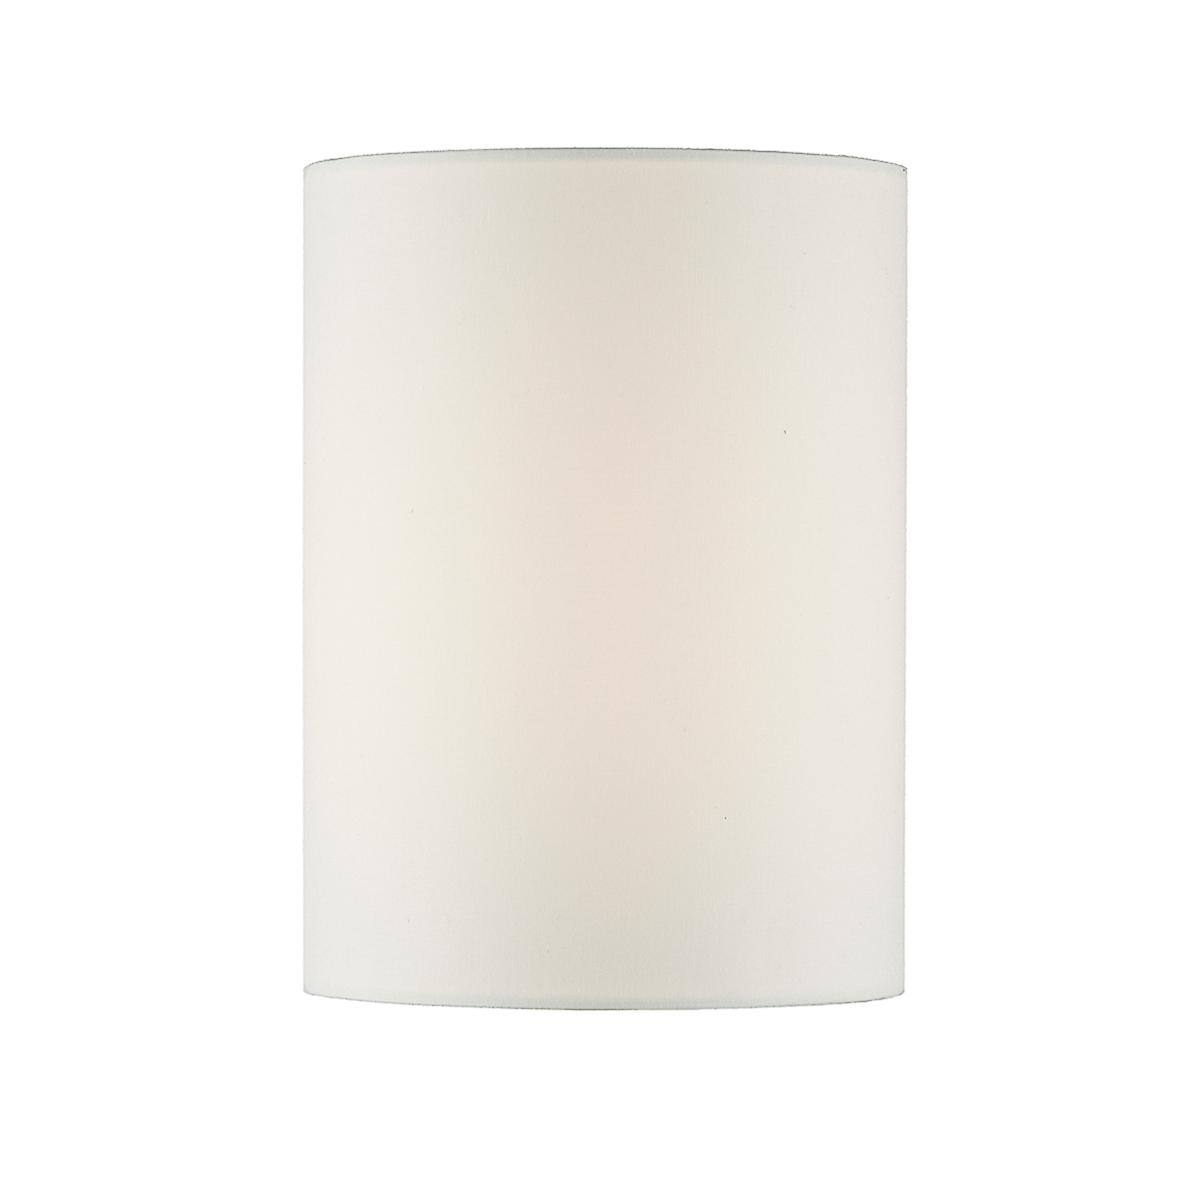 Dar S1061 Tuscan Cream Shade For The Tuscan Wall Light